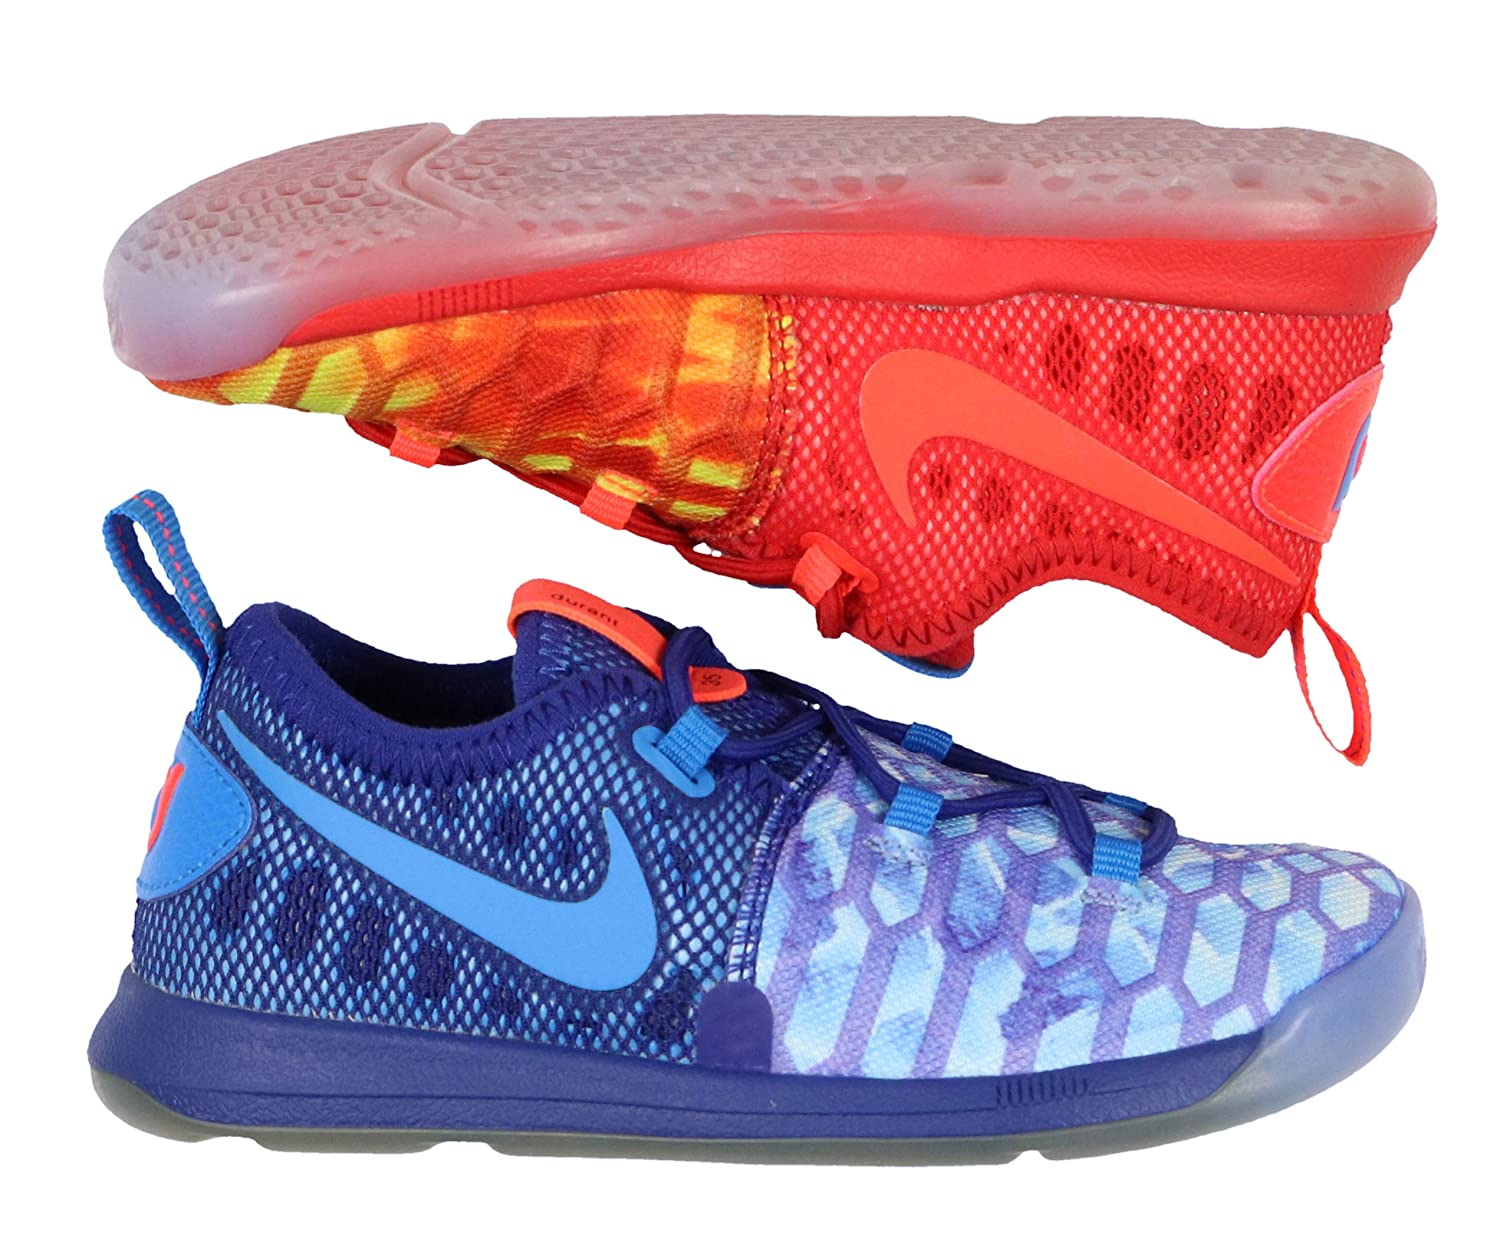 best authentic 1cc94 fbf3f Amazon.com | Nike KD 9 Toddler 855910 400 (Right Blue, Left ...